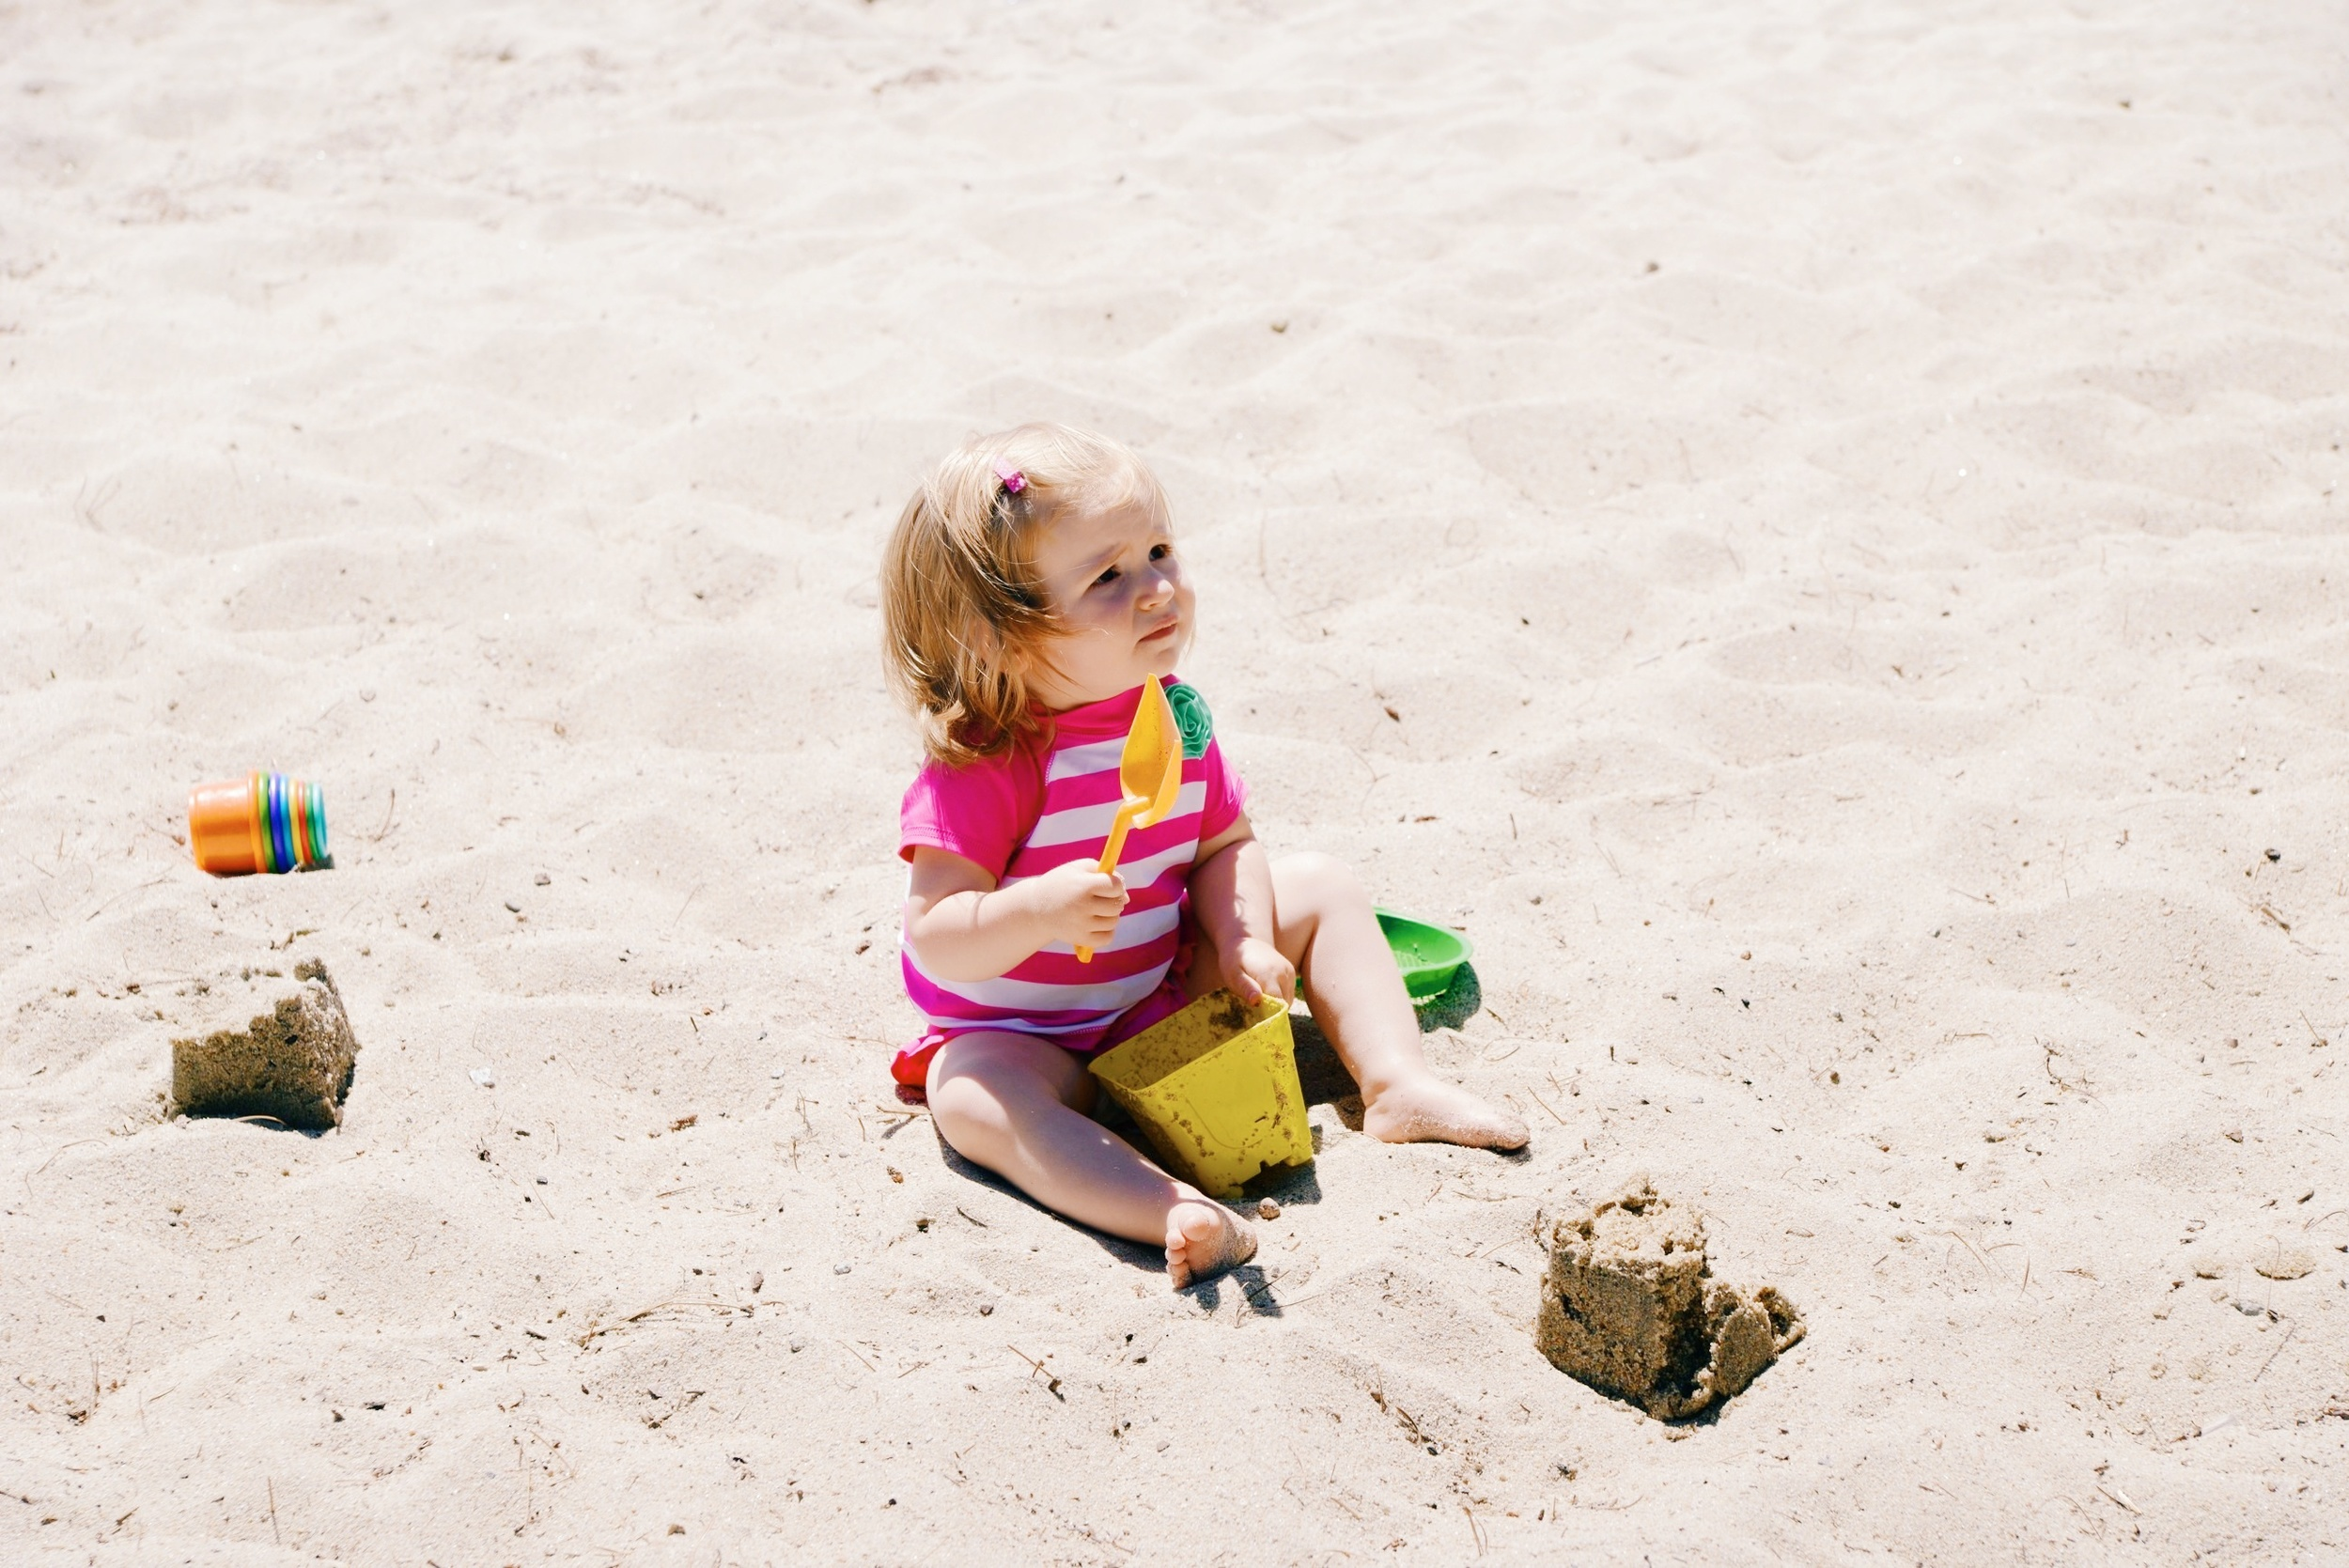 Lila at the beach on Saturday